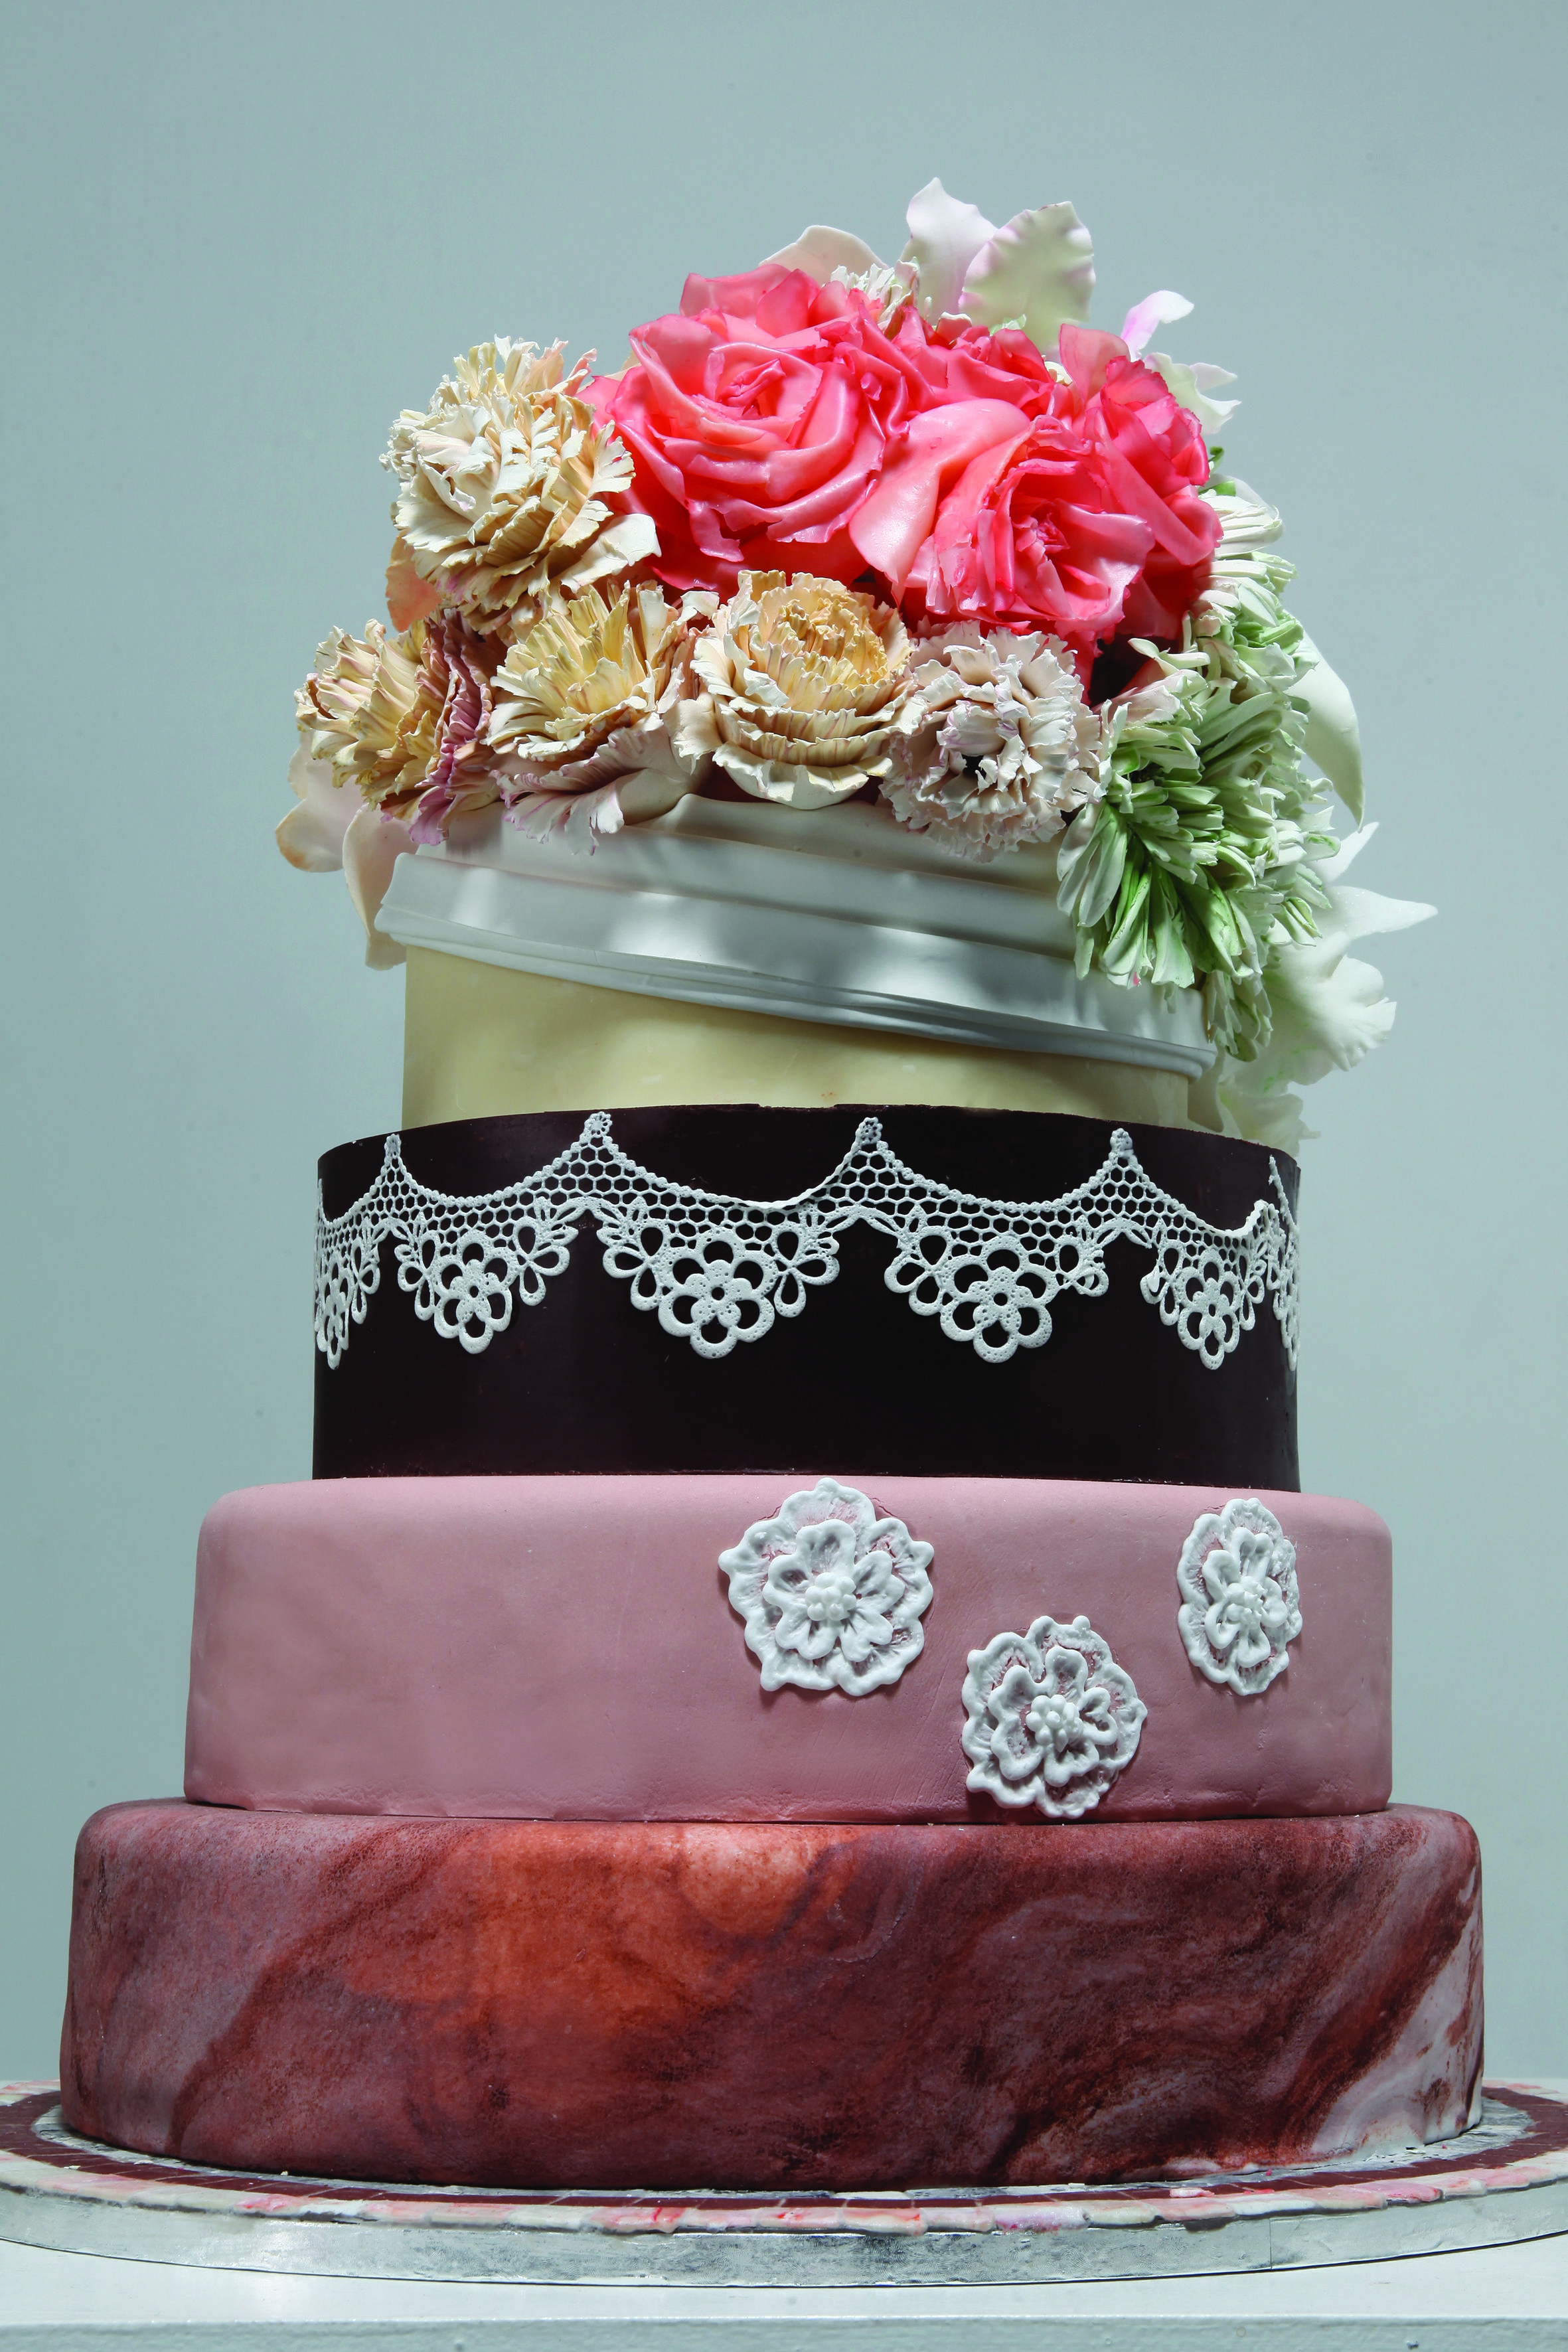 You'll need a beautiful wedding cake for the most important day of your life!